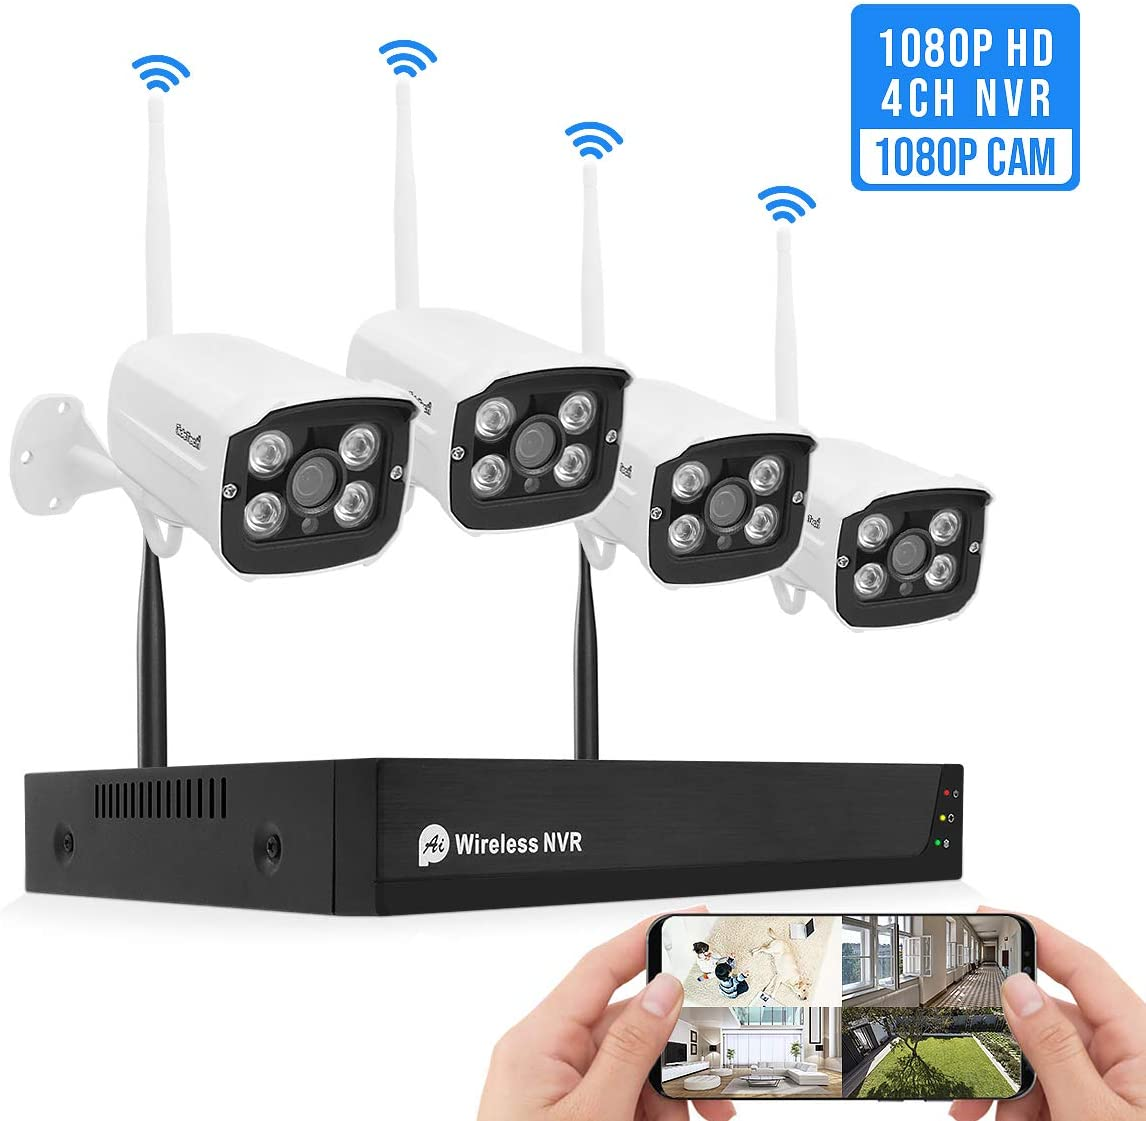 1080P Wireless Security Camera System Outdoor Indoor Plug Play 4-Channel NVR 4Pcs 2MP WiFi Video Surveillance Cameras H.265 with Night Vision, Motion Detection, P2P, 24 7 Recording, No Hard Drive